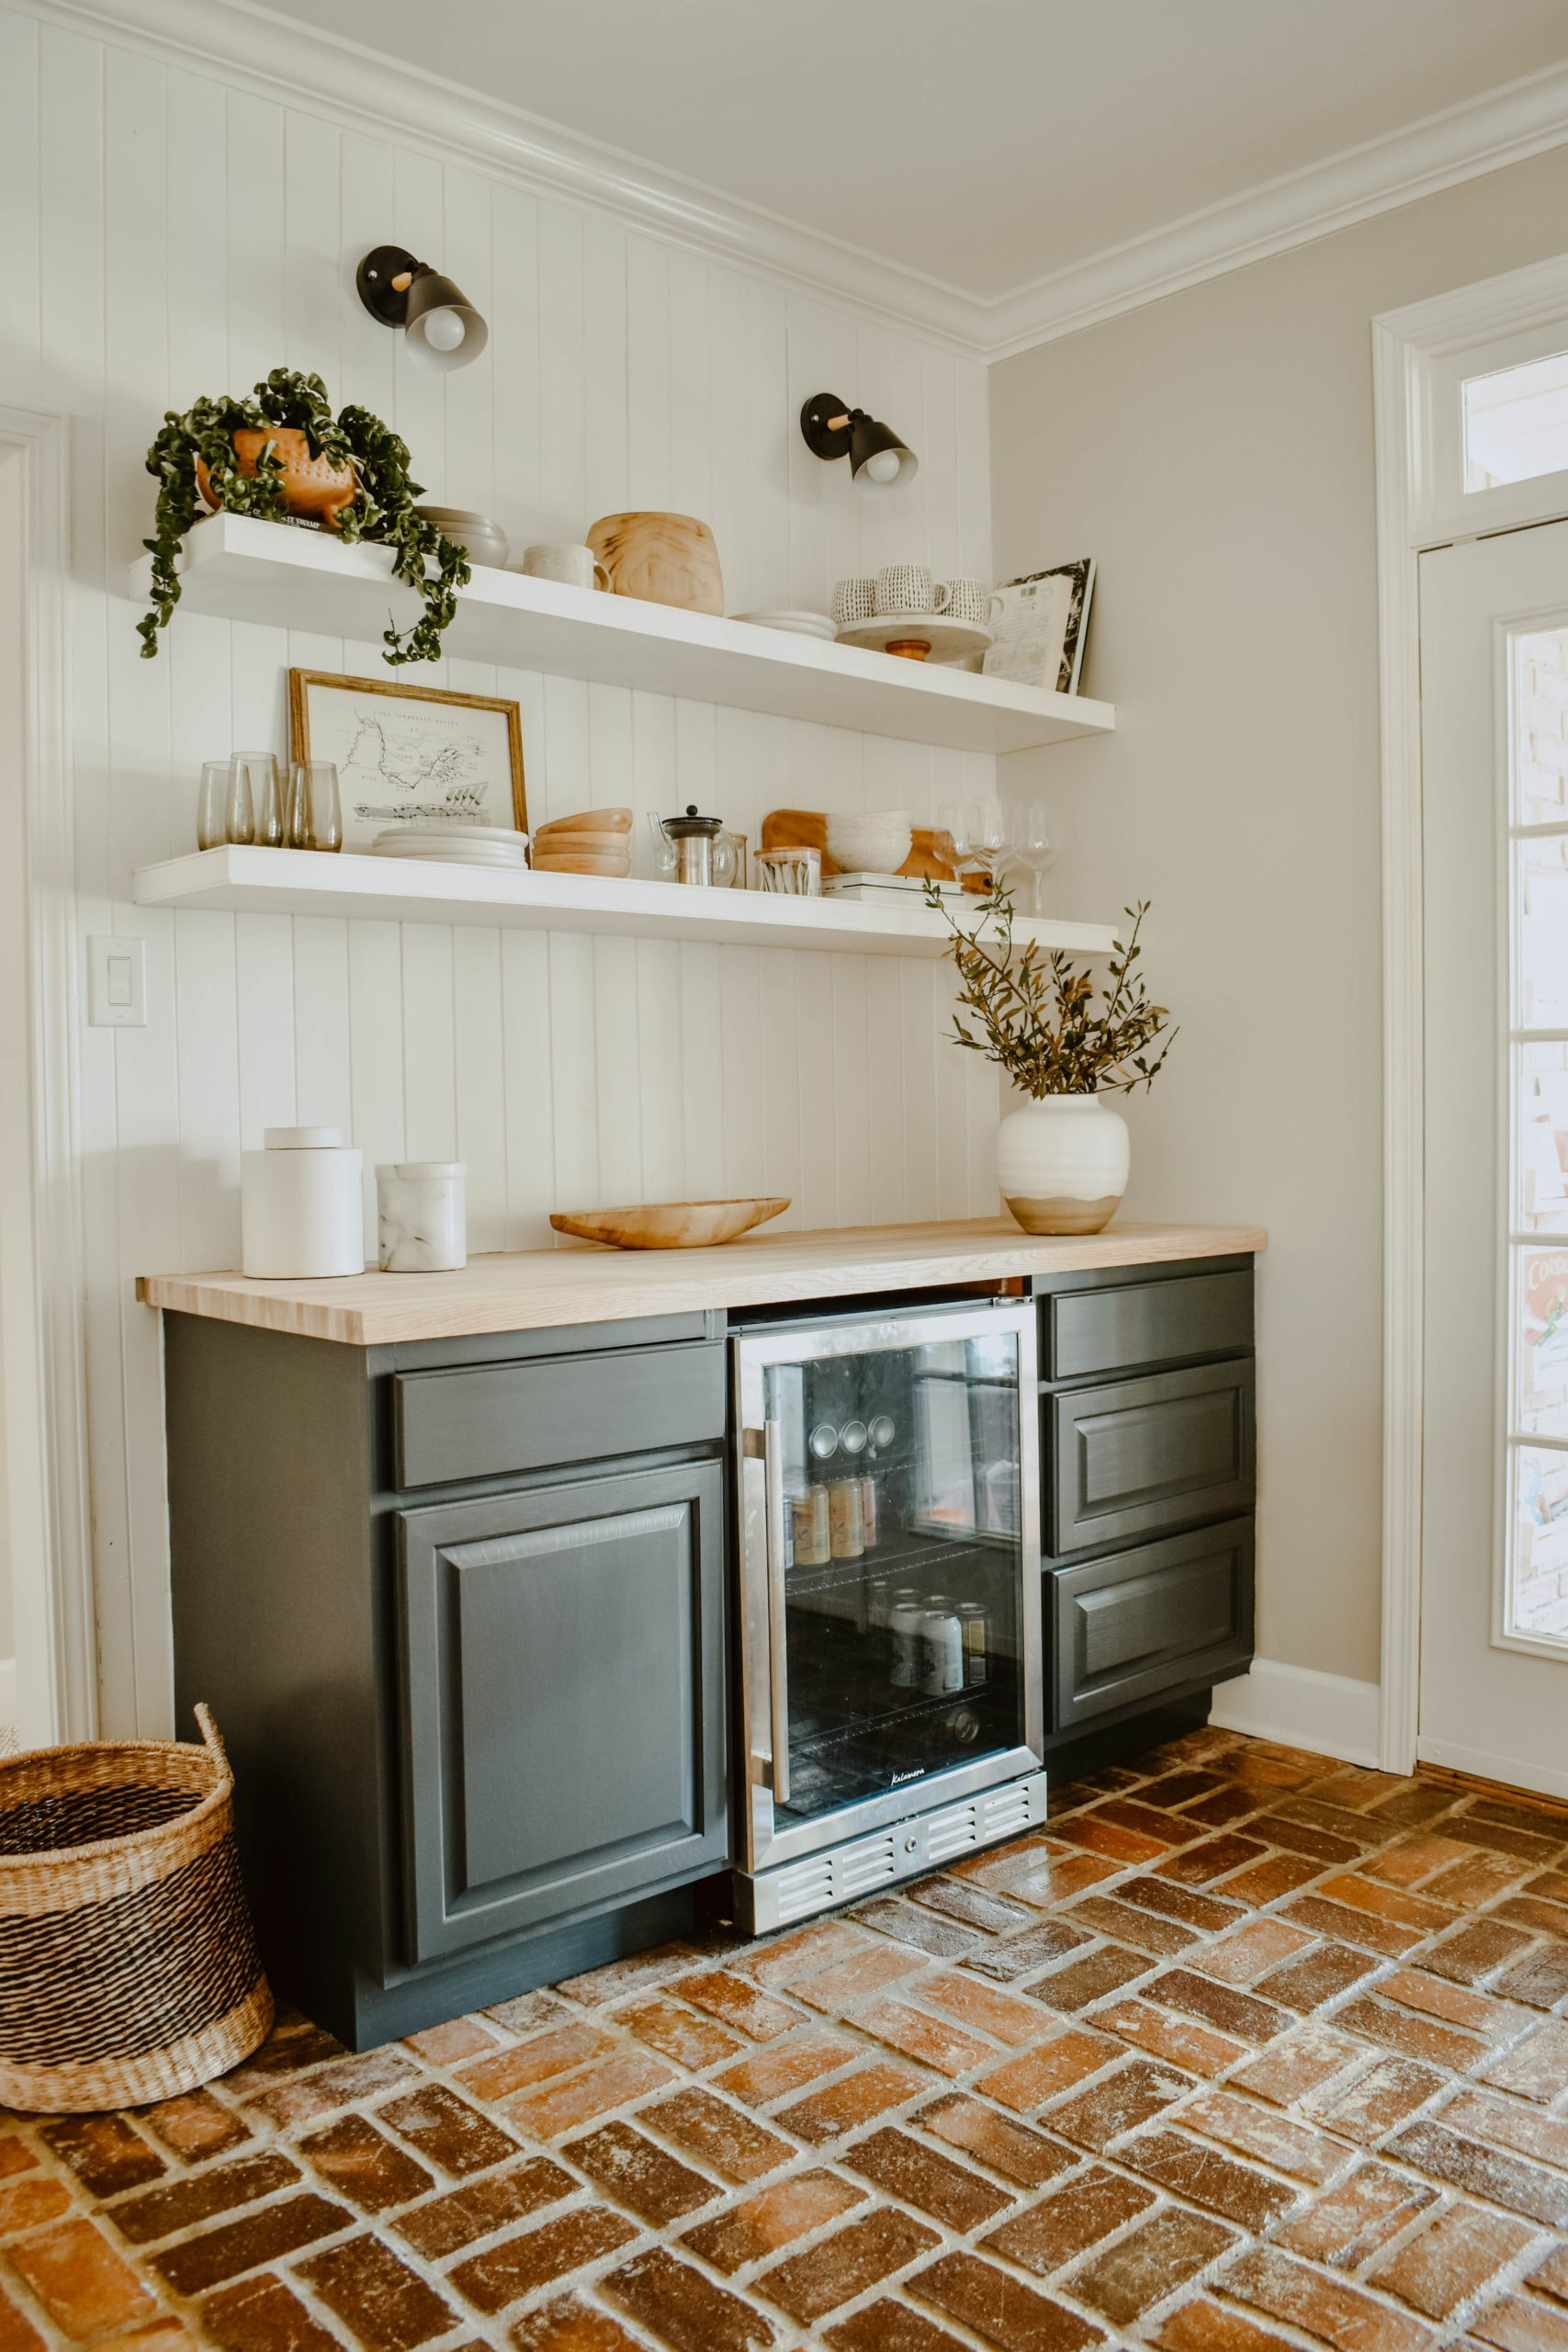 How To Build A Diy Dry Bar House On Longwood Lane